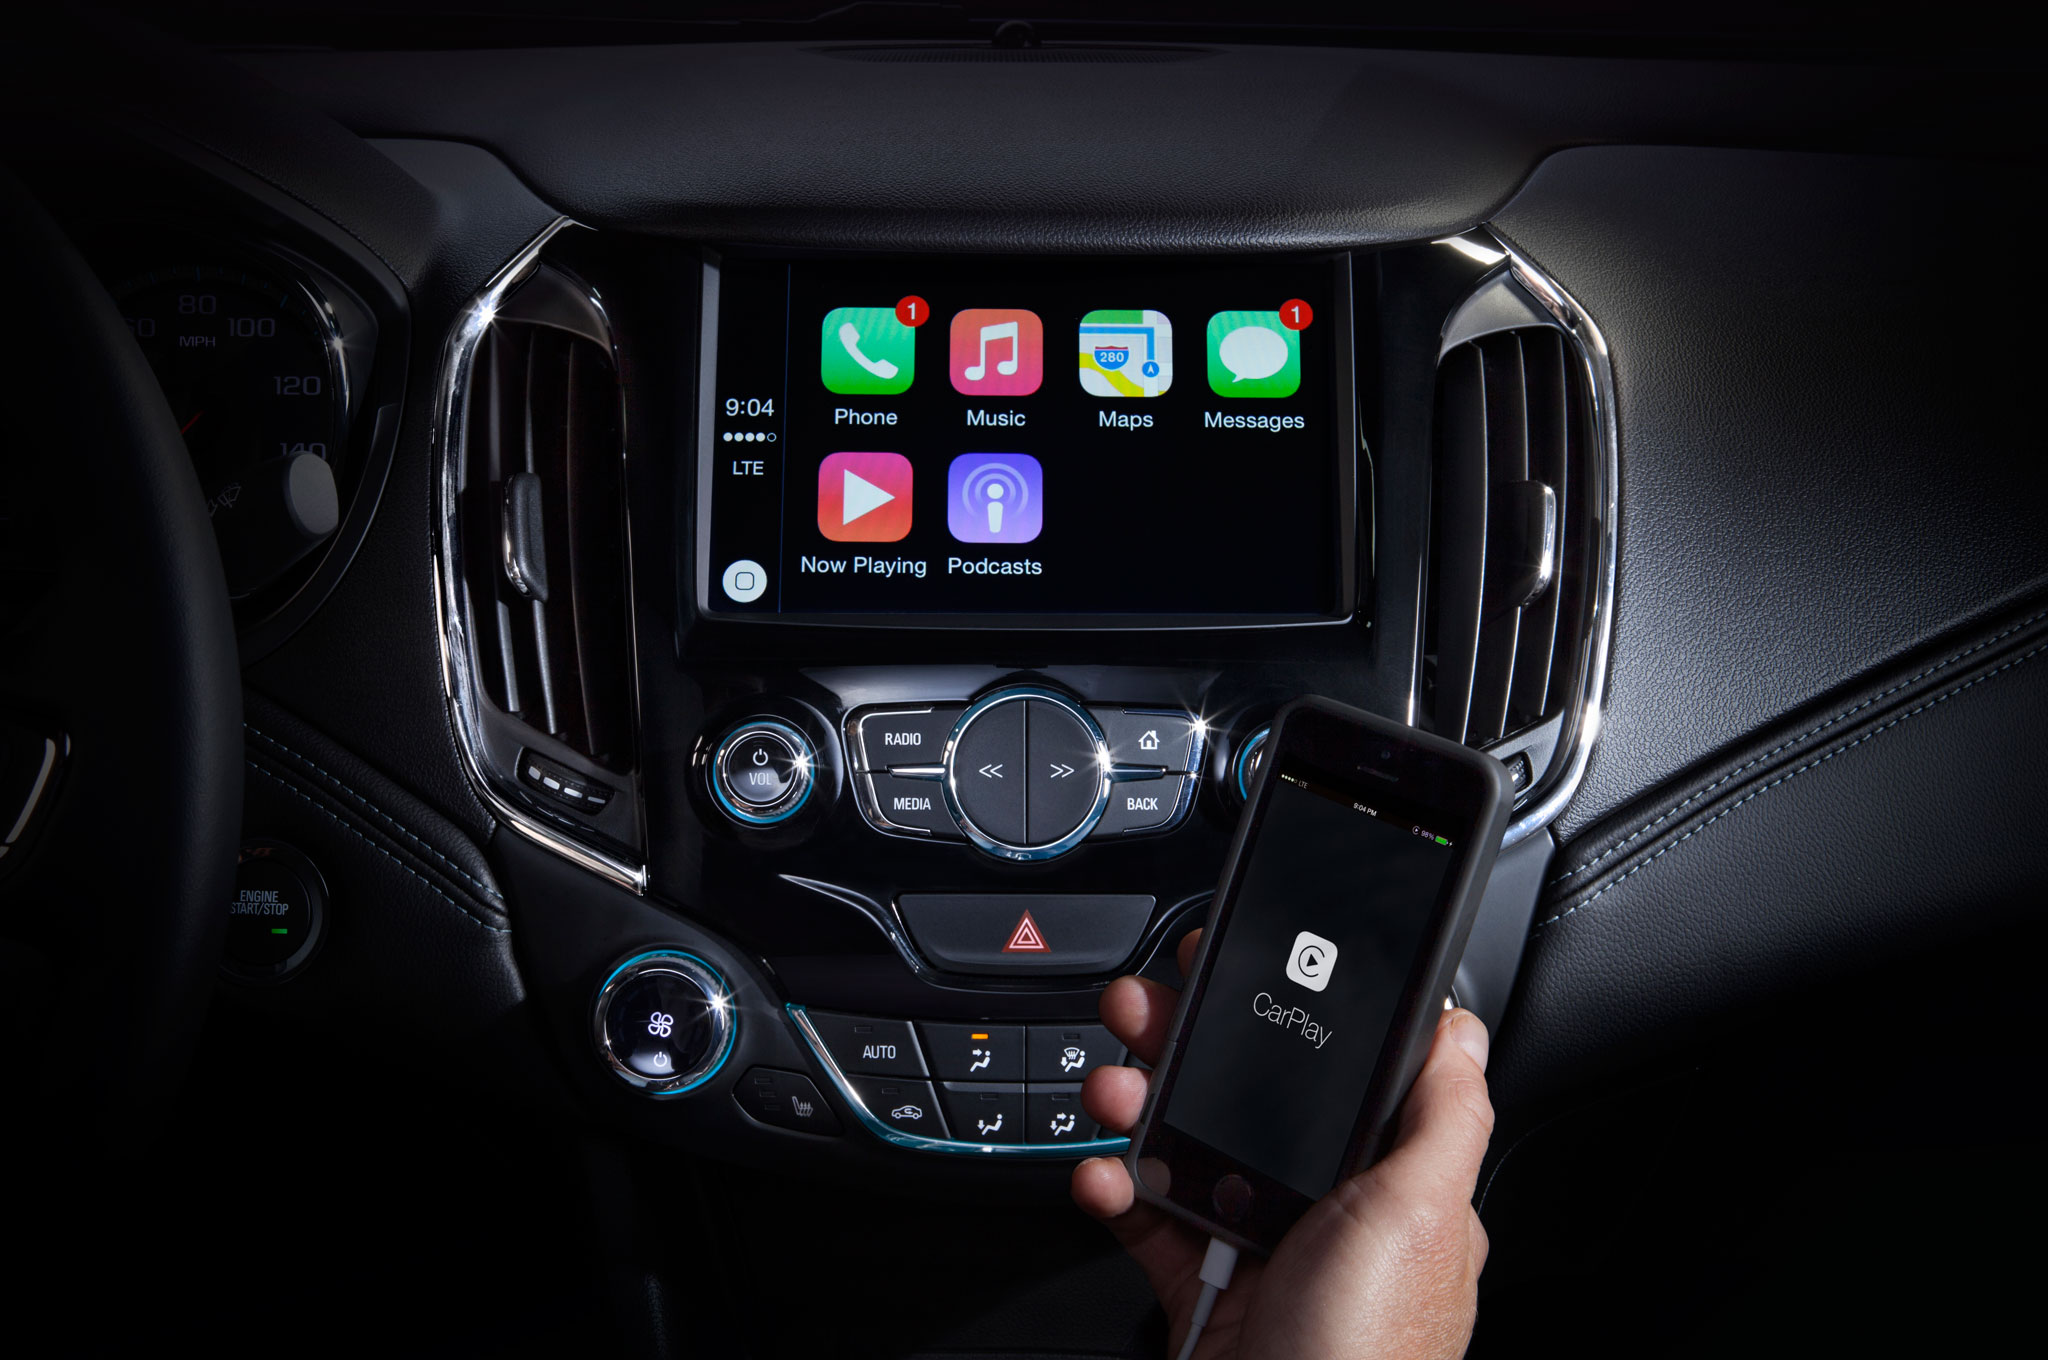 Connectivity features include apple carplay and android auto - 2 2